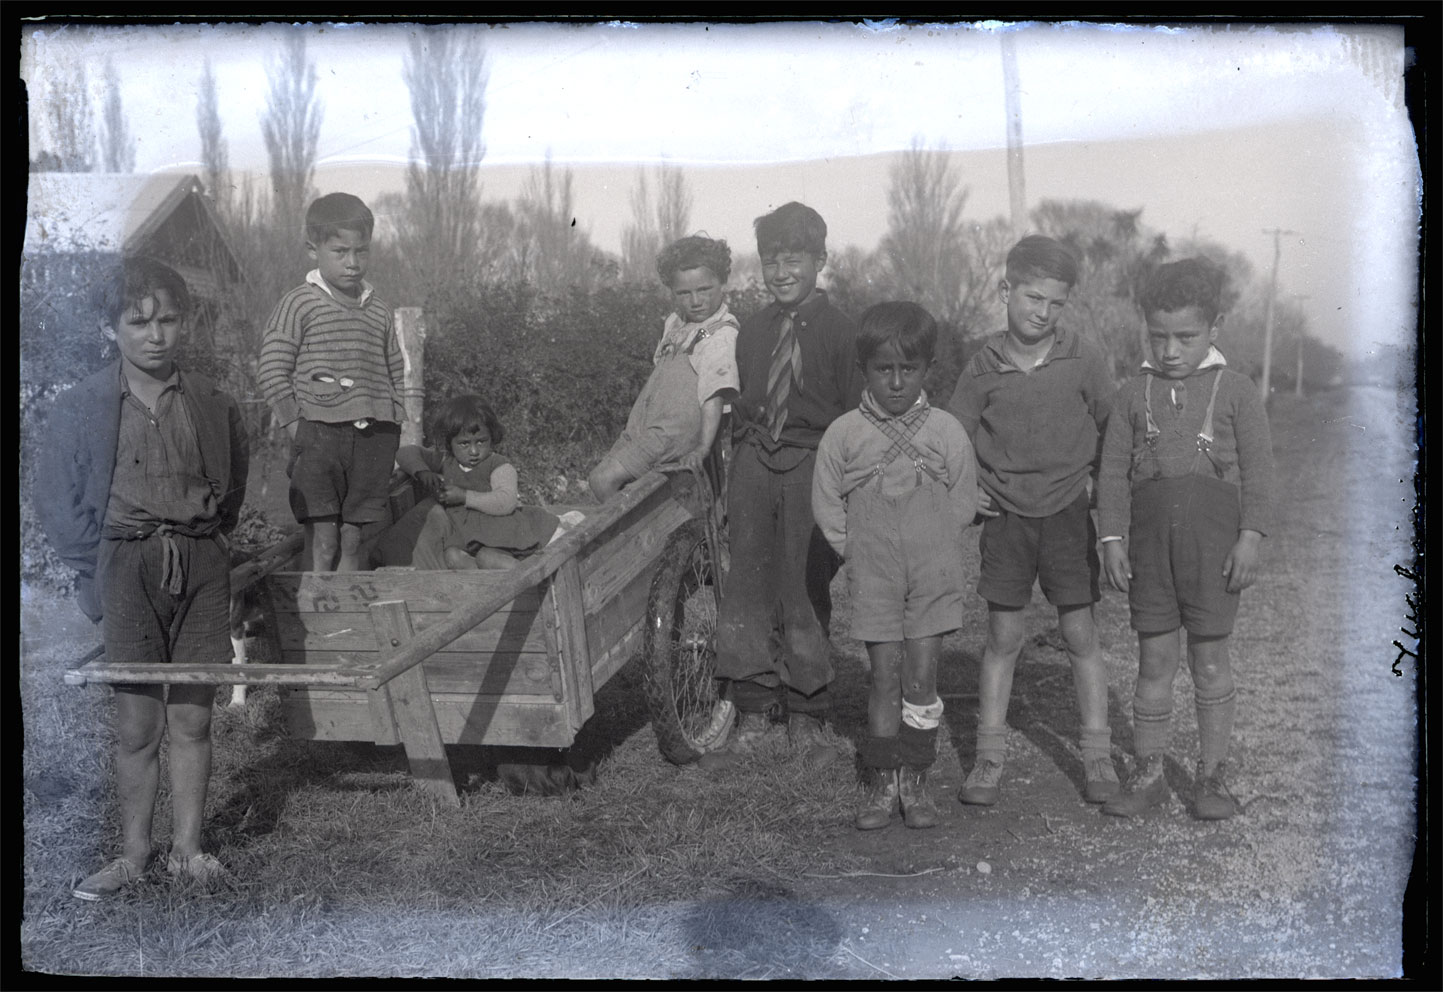 <p>Tamariki at Tuahiwi, c.1936. Left to right: Joe Howse, Mutu Hopkinson, Iola Croft, Trevor Howse, Charles Barrett, Dominic Croft, Gerald Howse and Jono Croft. <em>W.A. Taylor Collection, Canterbury Museum, 1968.213.3207</em></p>